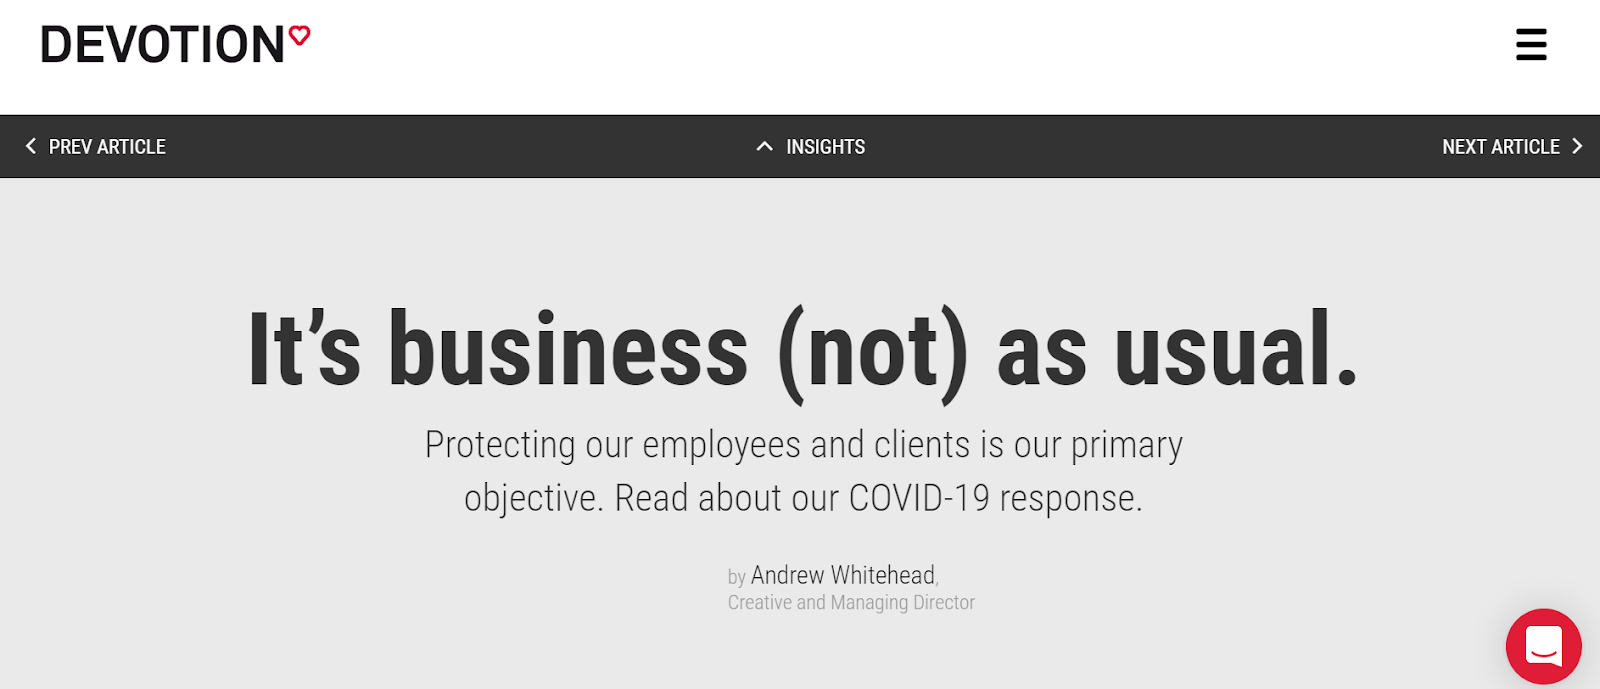 Devotion - a Sydney-based Digital Marketing Agency's response to COVID-19